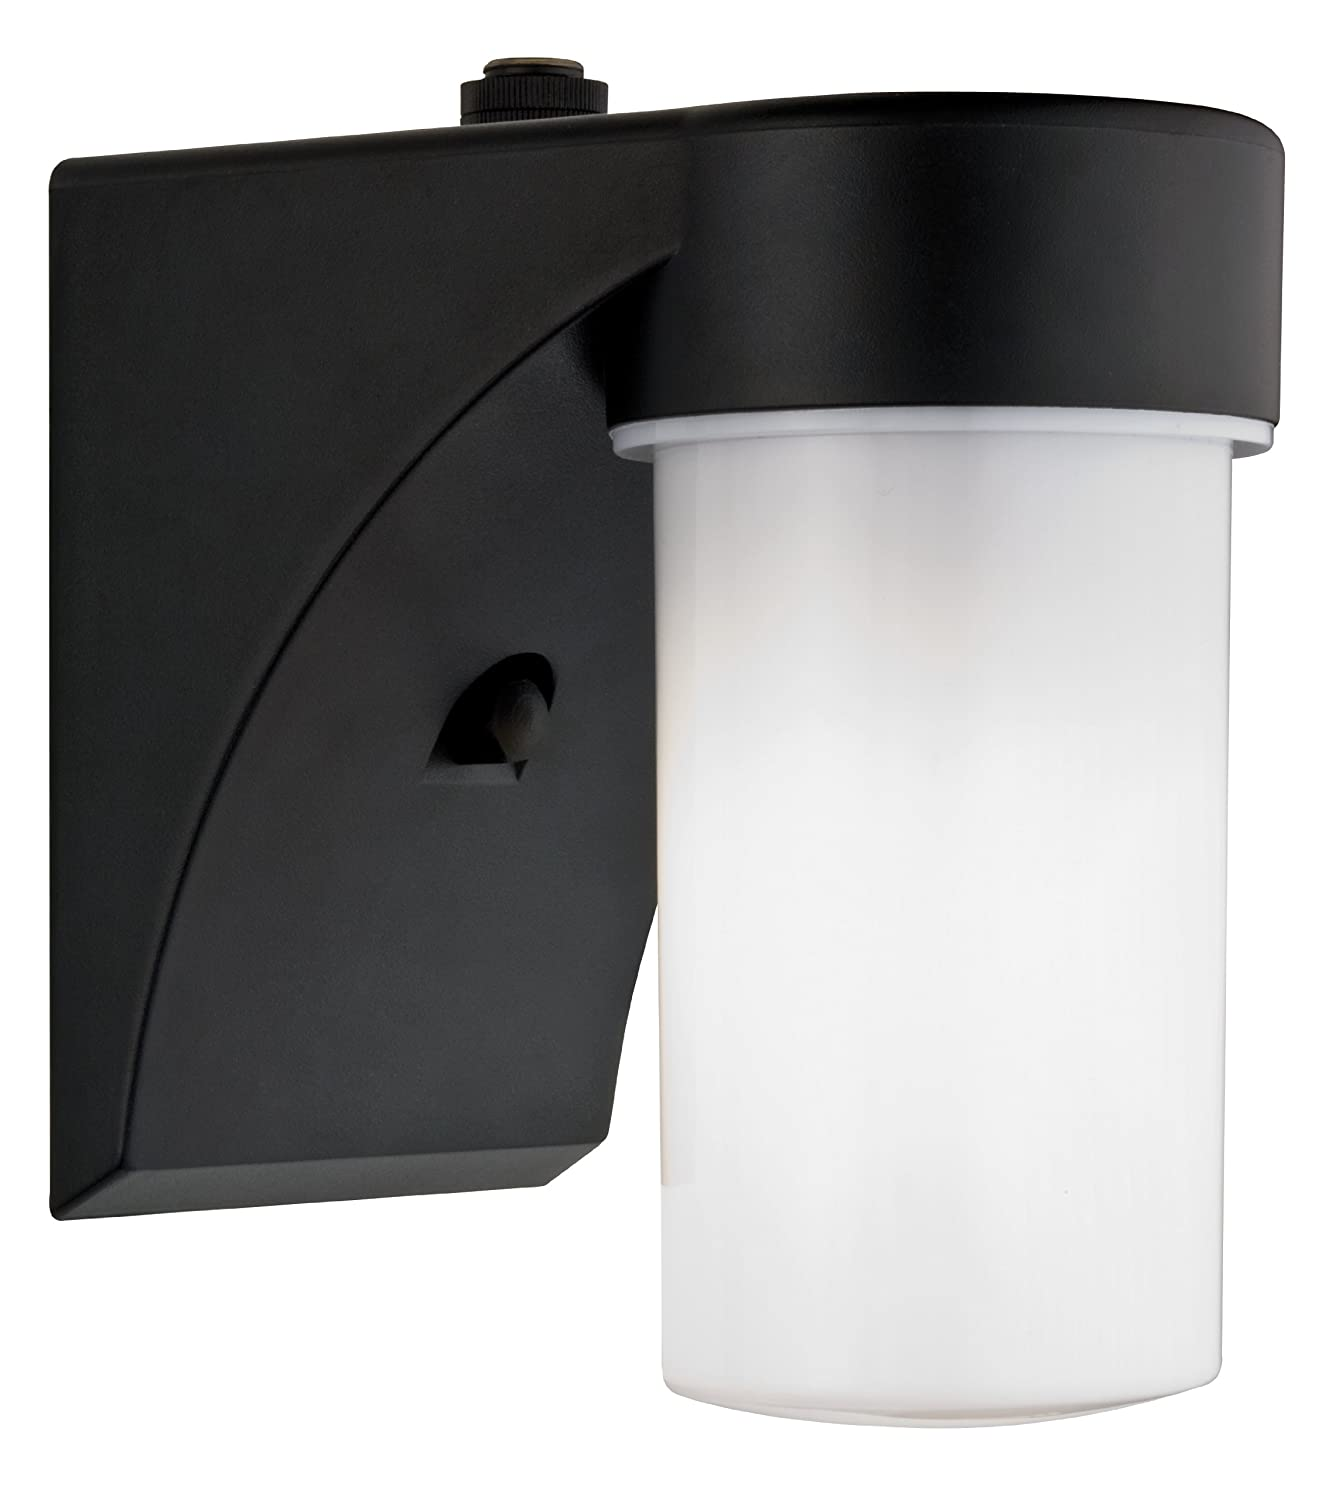 lithonia lighting osc 13f 120 p lp bl m6 outdoor cylinder wall